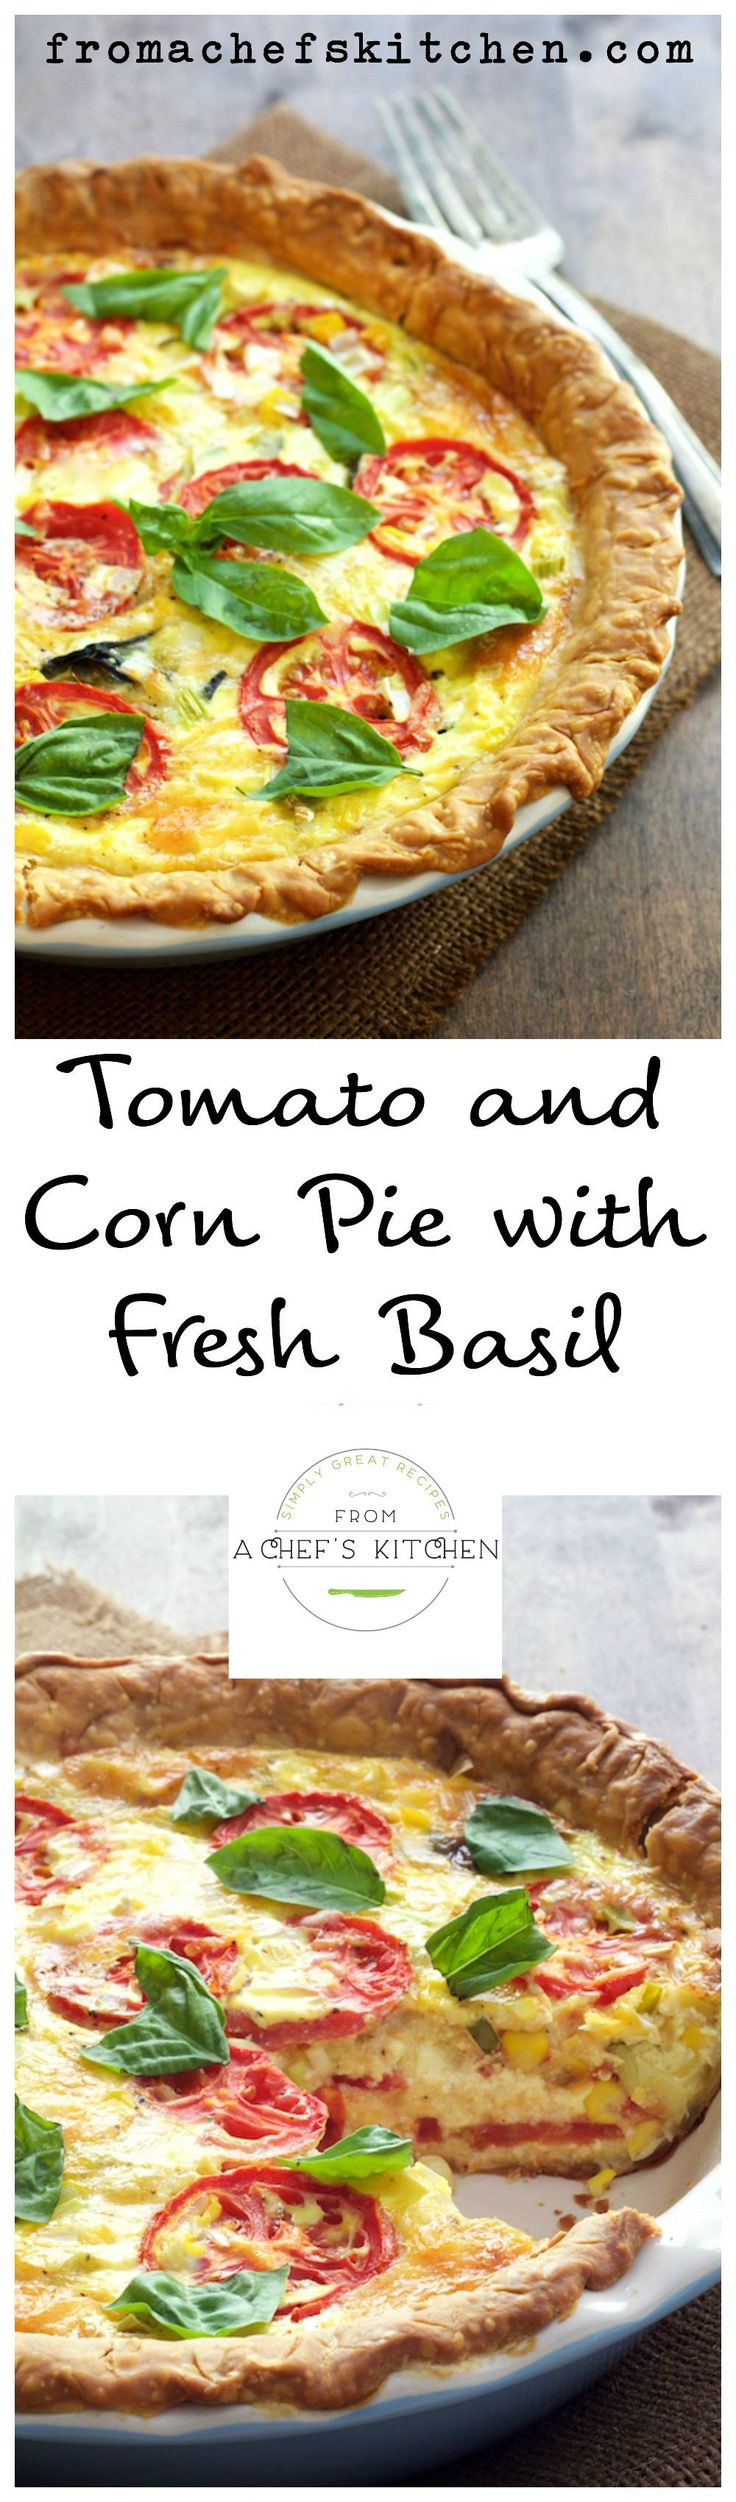 Tomato and Corn Pie with Fresh Basil | Recipe | Fresh ...